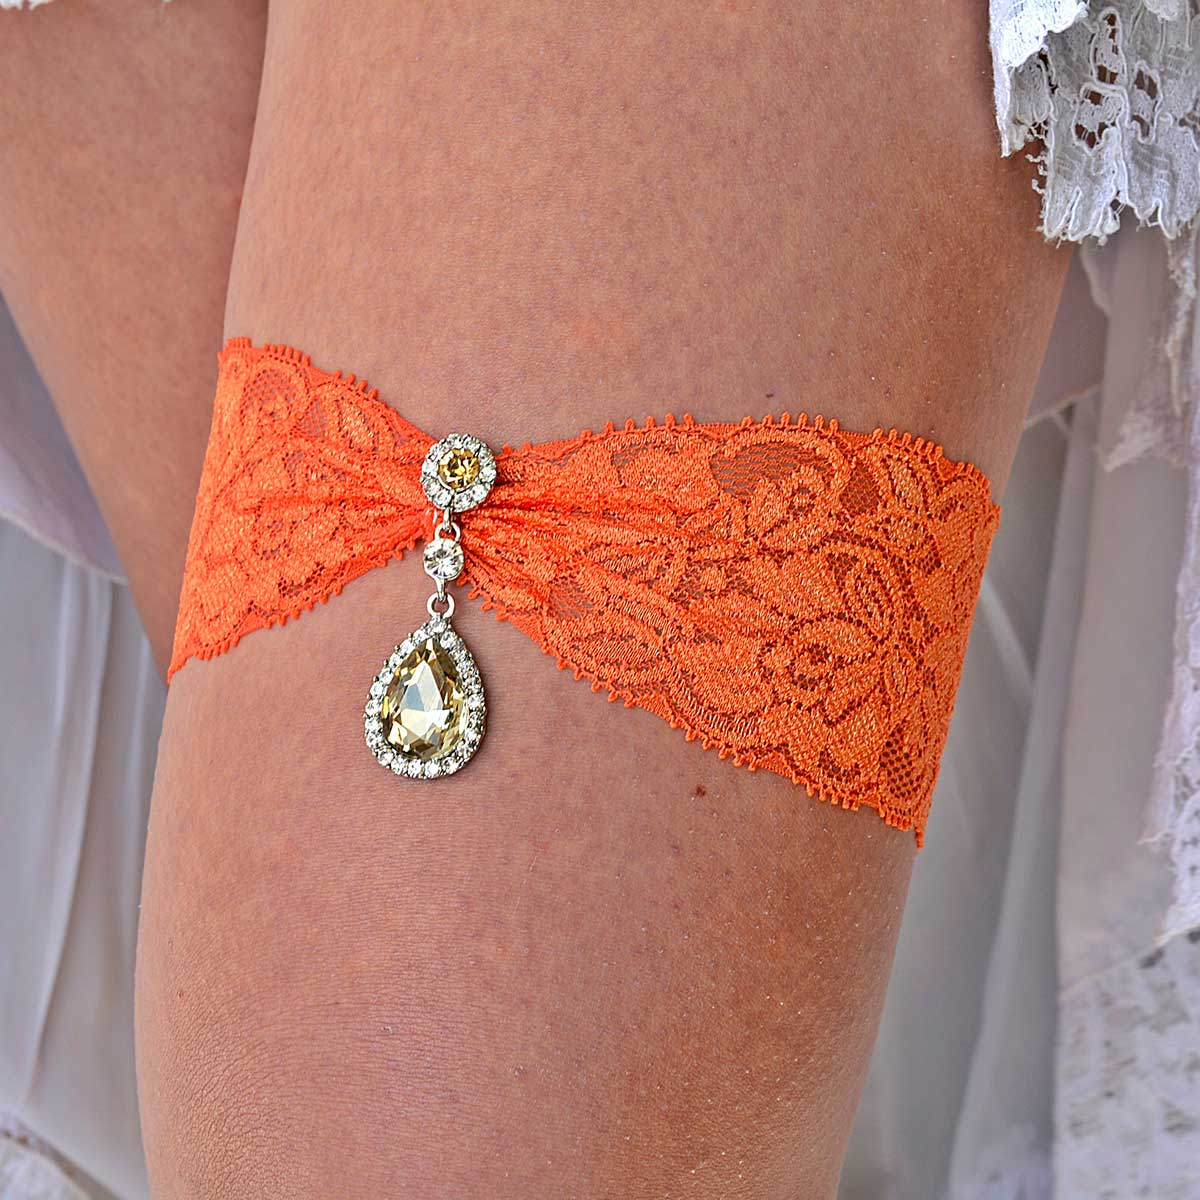 Orange Bridal Garter With Champagne & Clear Rhinestones - Wedding Garter - SuzannaM Designs